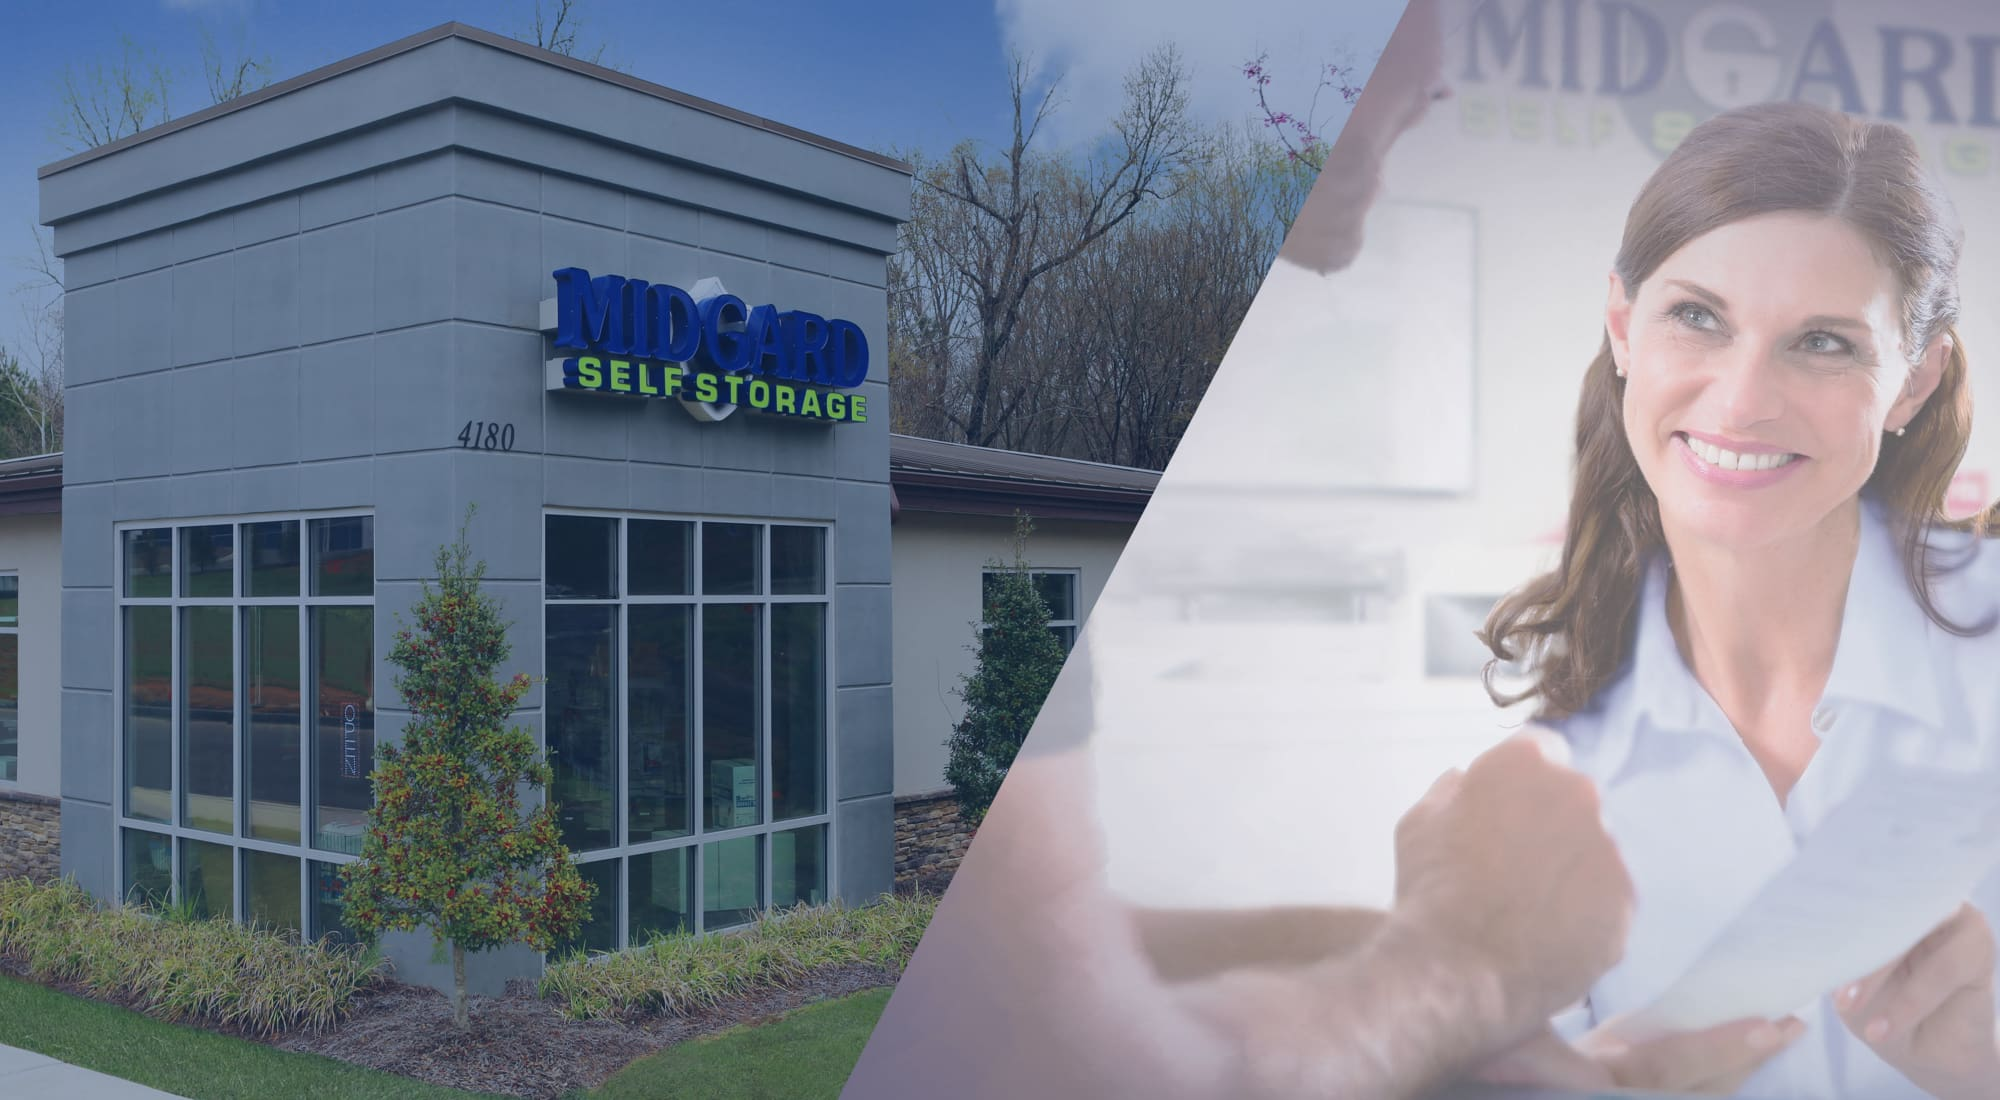 Self storage at Midgard Self Storage in Lake Wylie, South Carolina